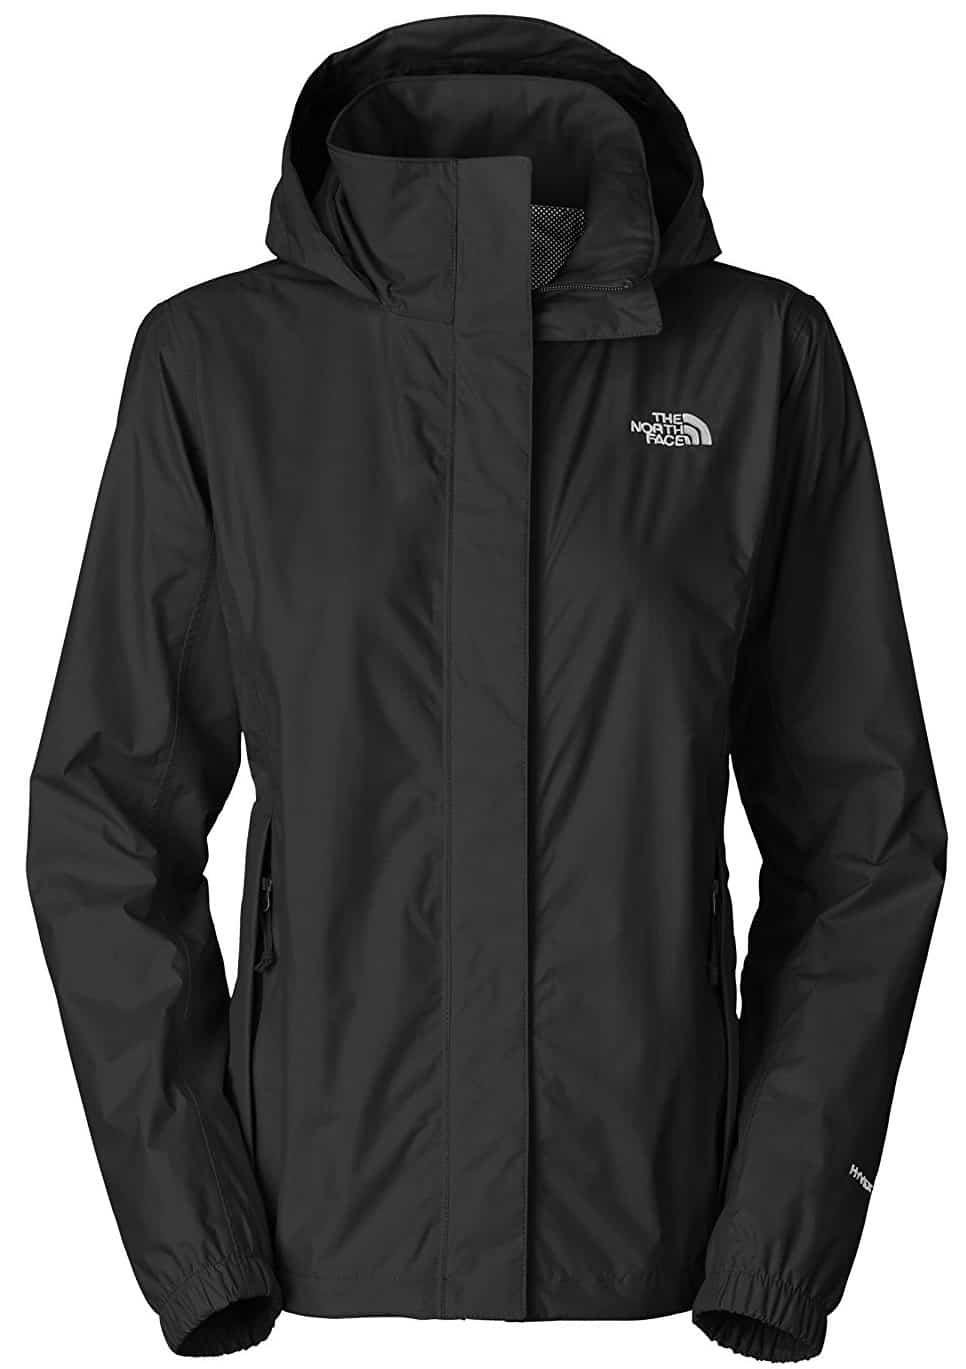 Womens Waterproof Jacket for the Money – The North Face